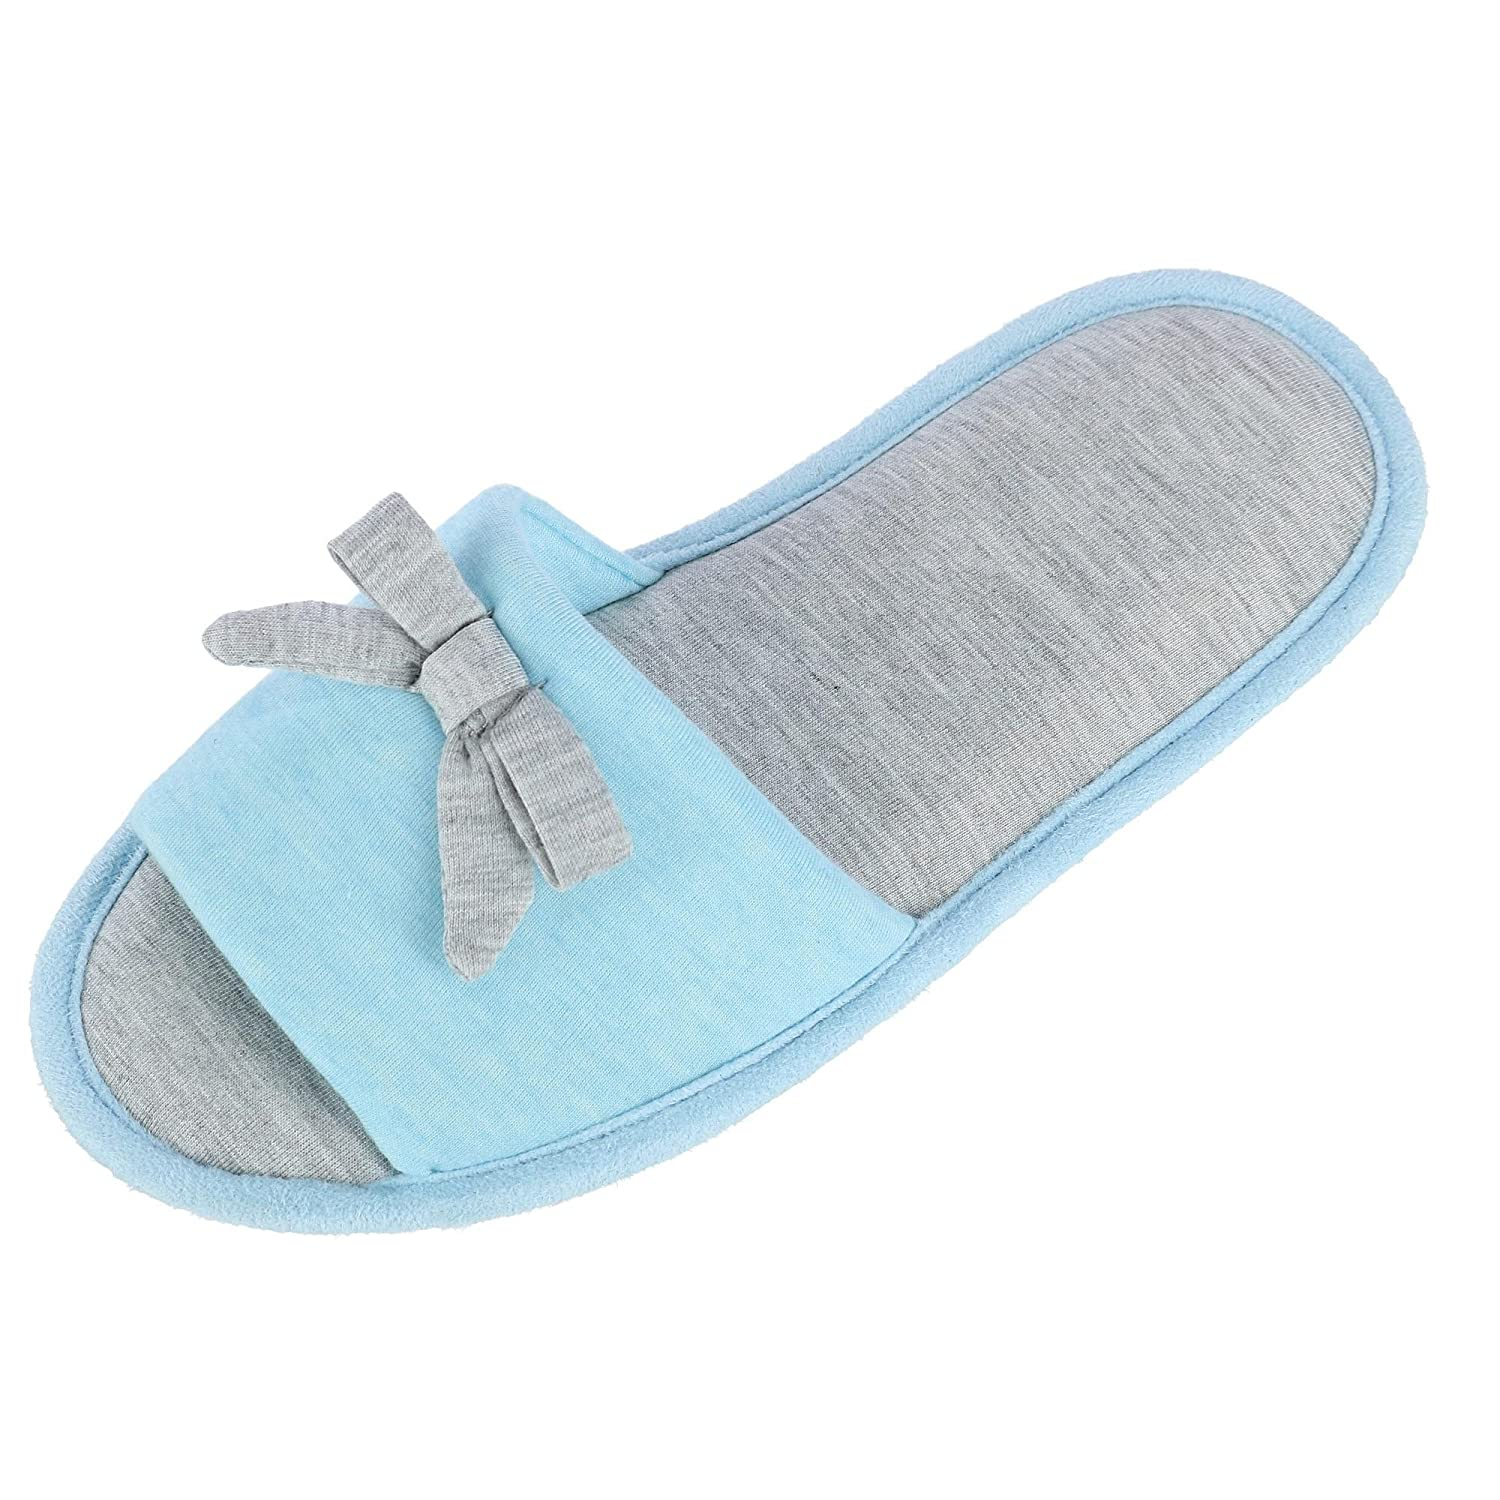 Hanes Women's Heather Jersey Open Toe Slide Slipper with Bow